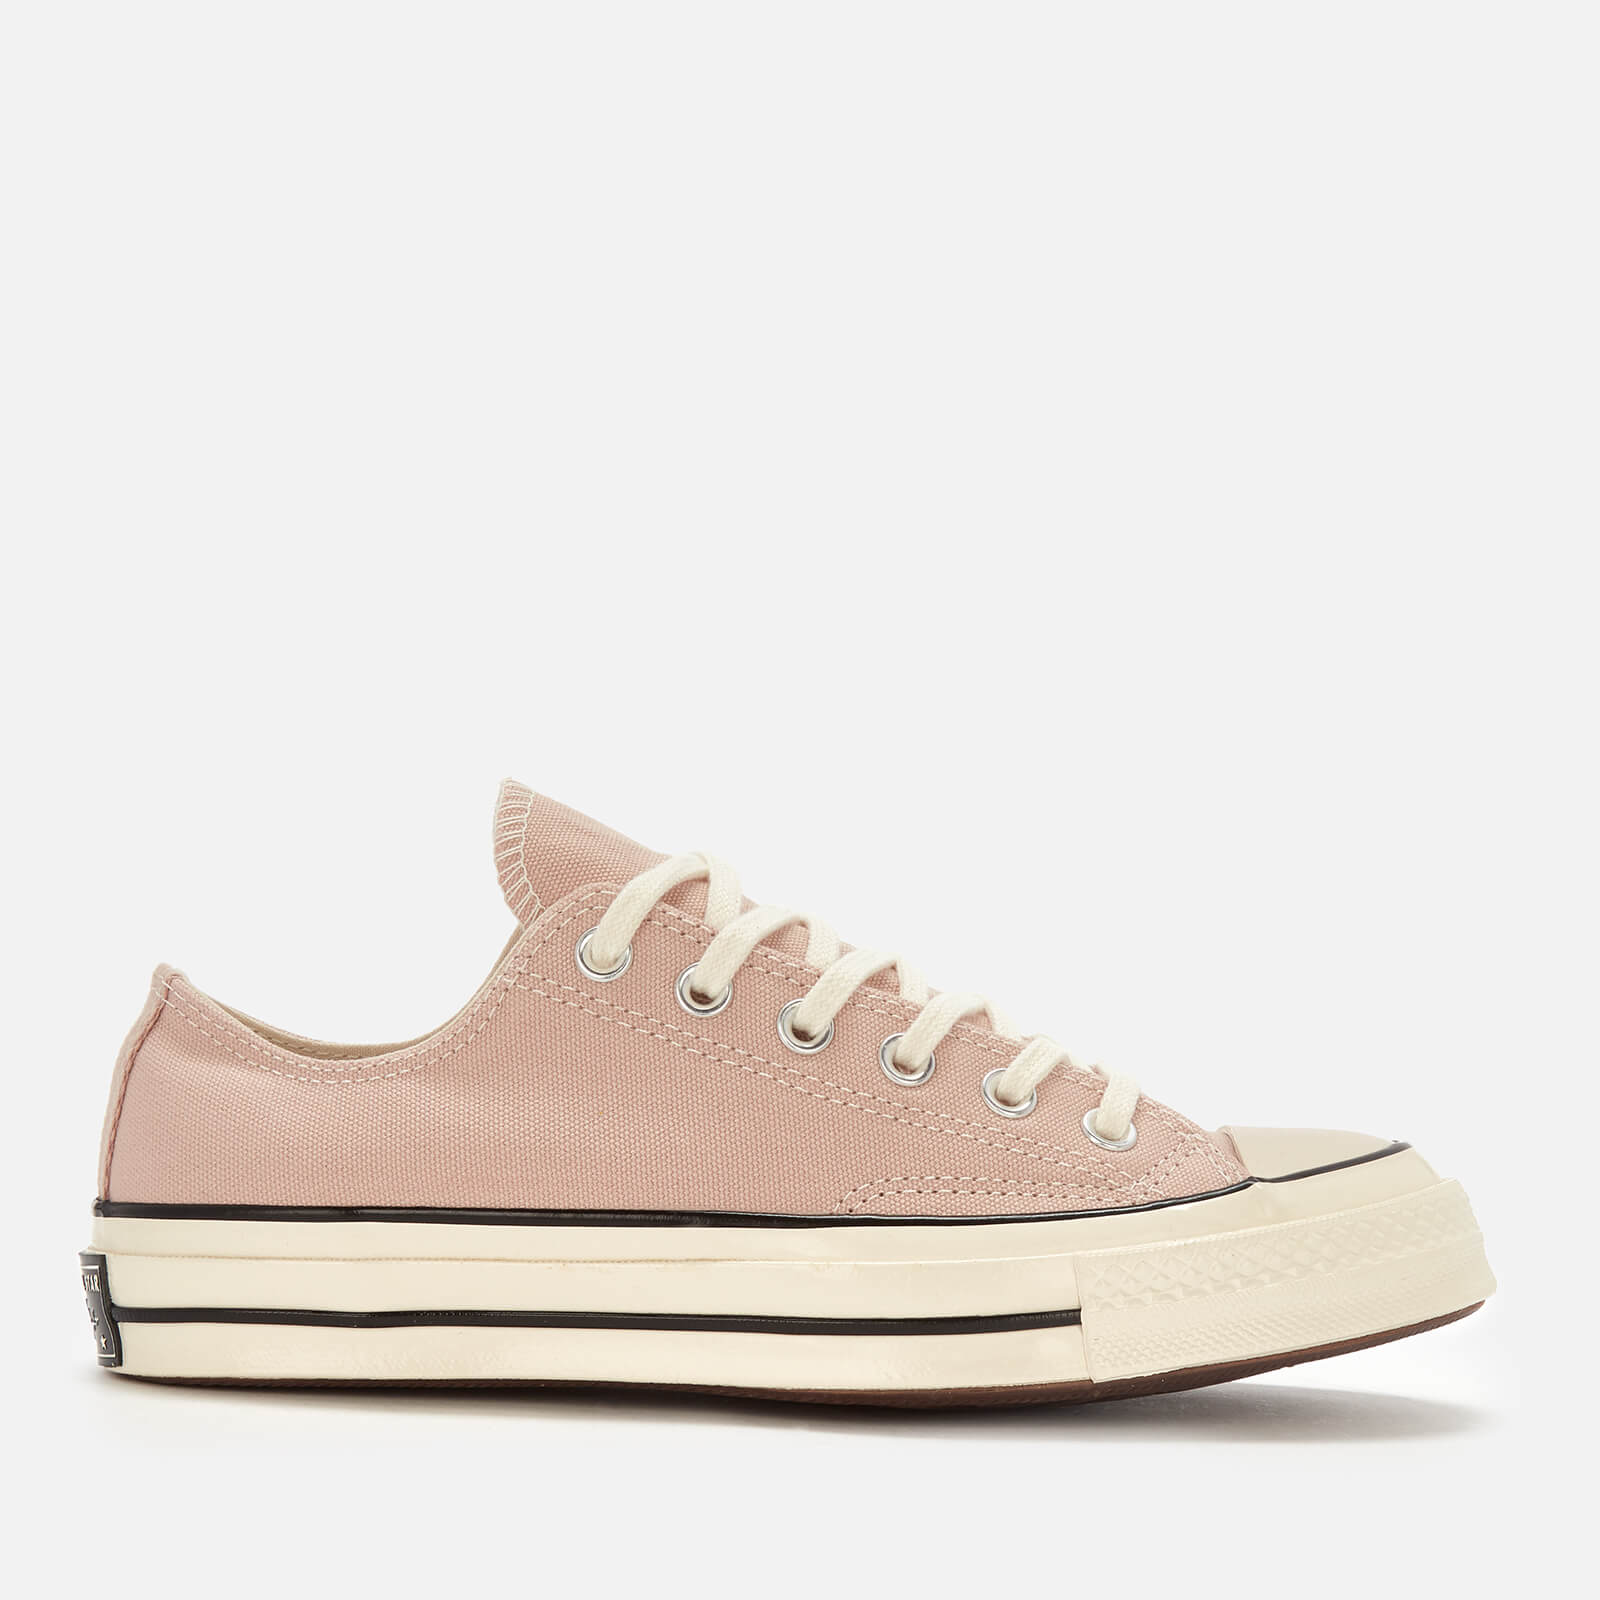 4ba8a5c08 Converse Chuck Taylor All Star 70 Ox Trainers - Particle Beige Black Egret  - Free UK Delivery over £50